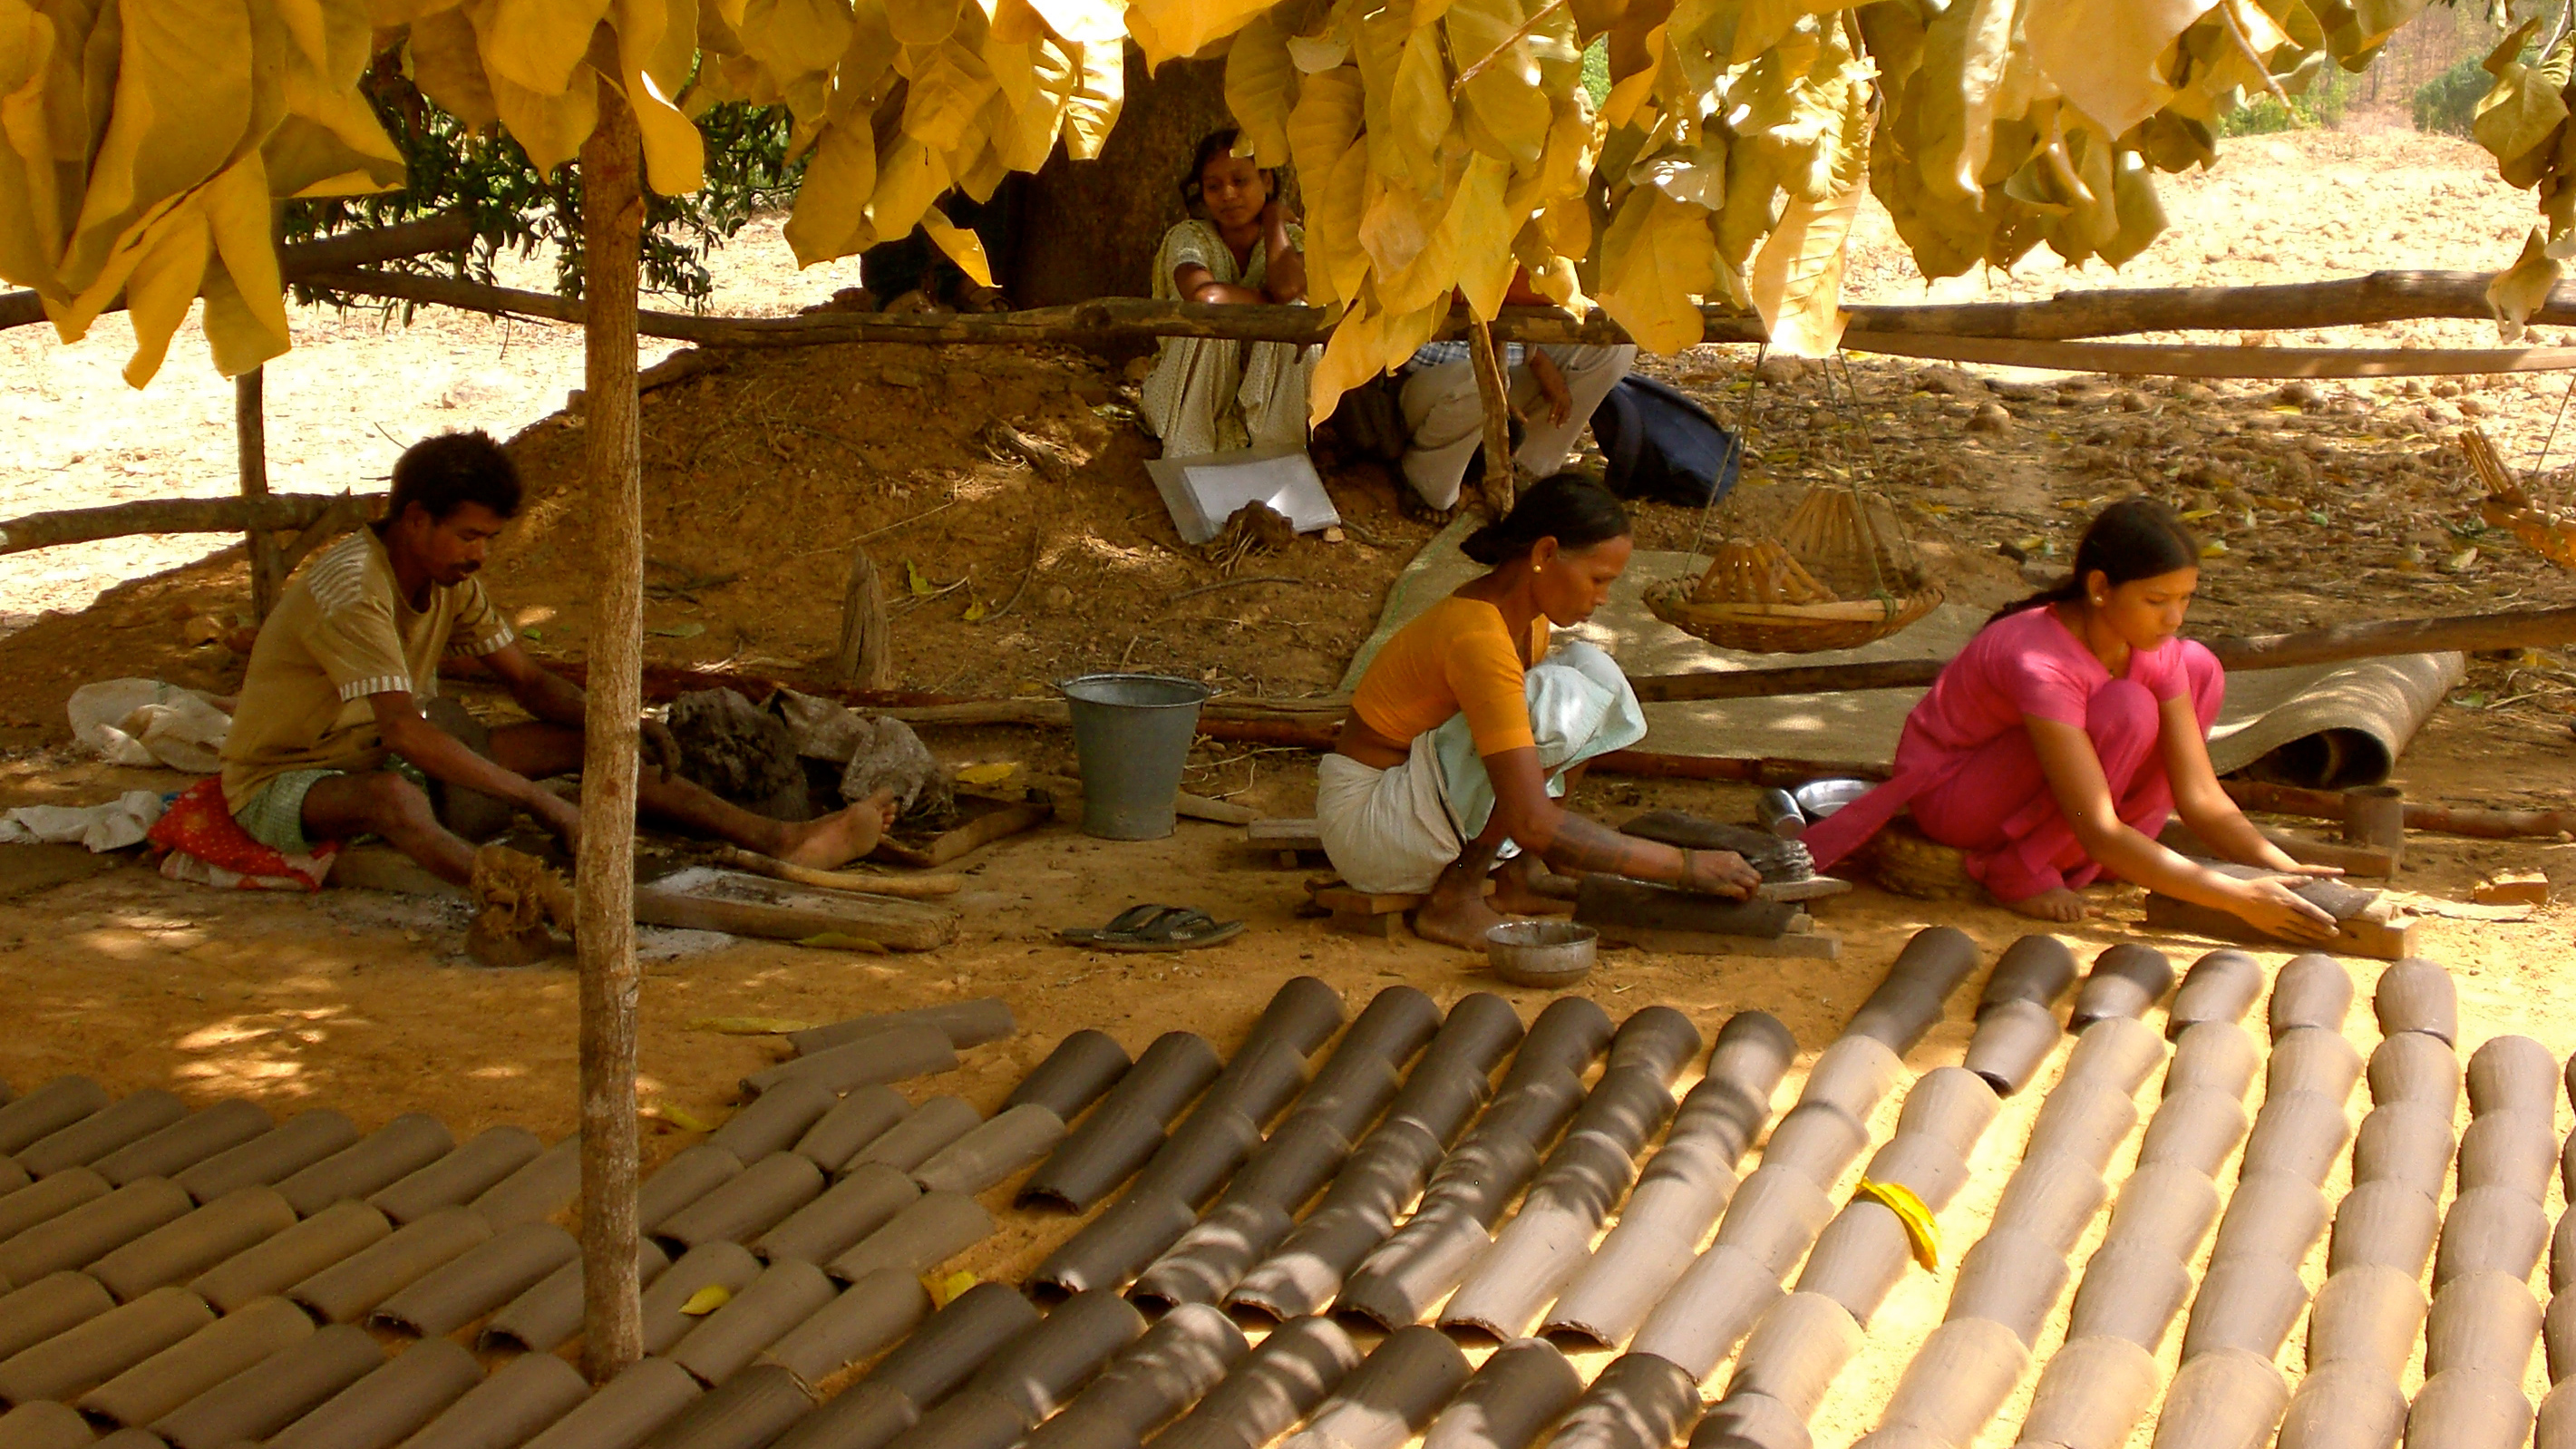 People working in a rural village